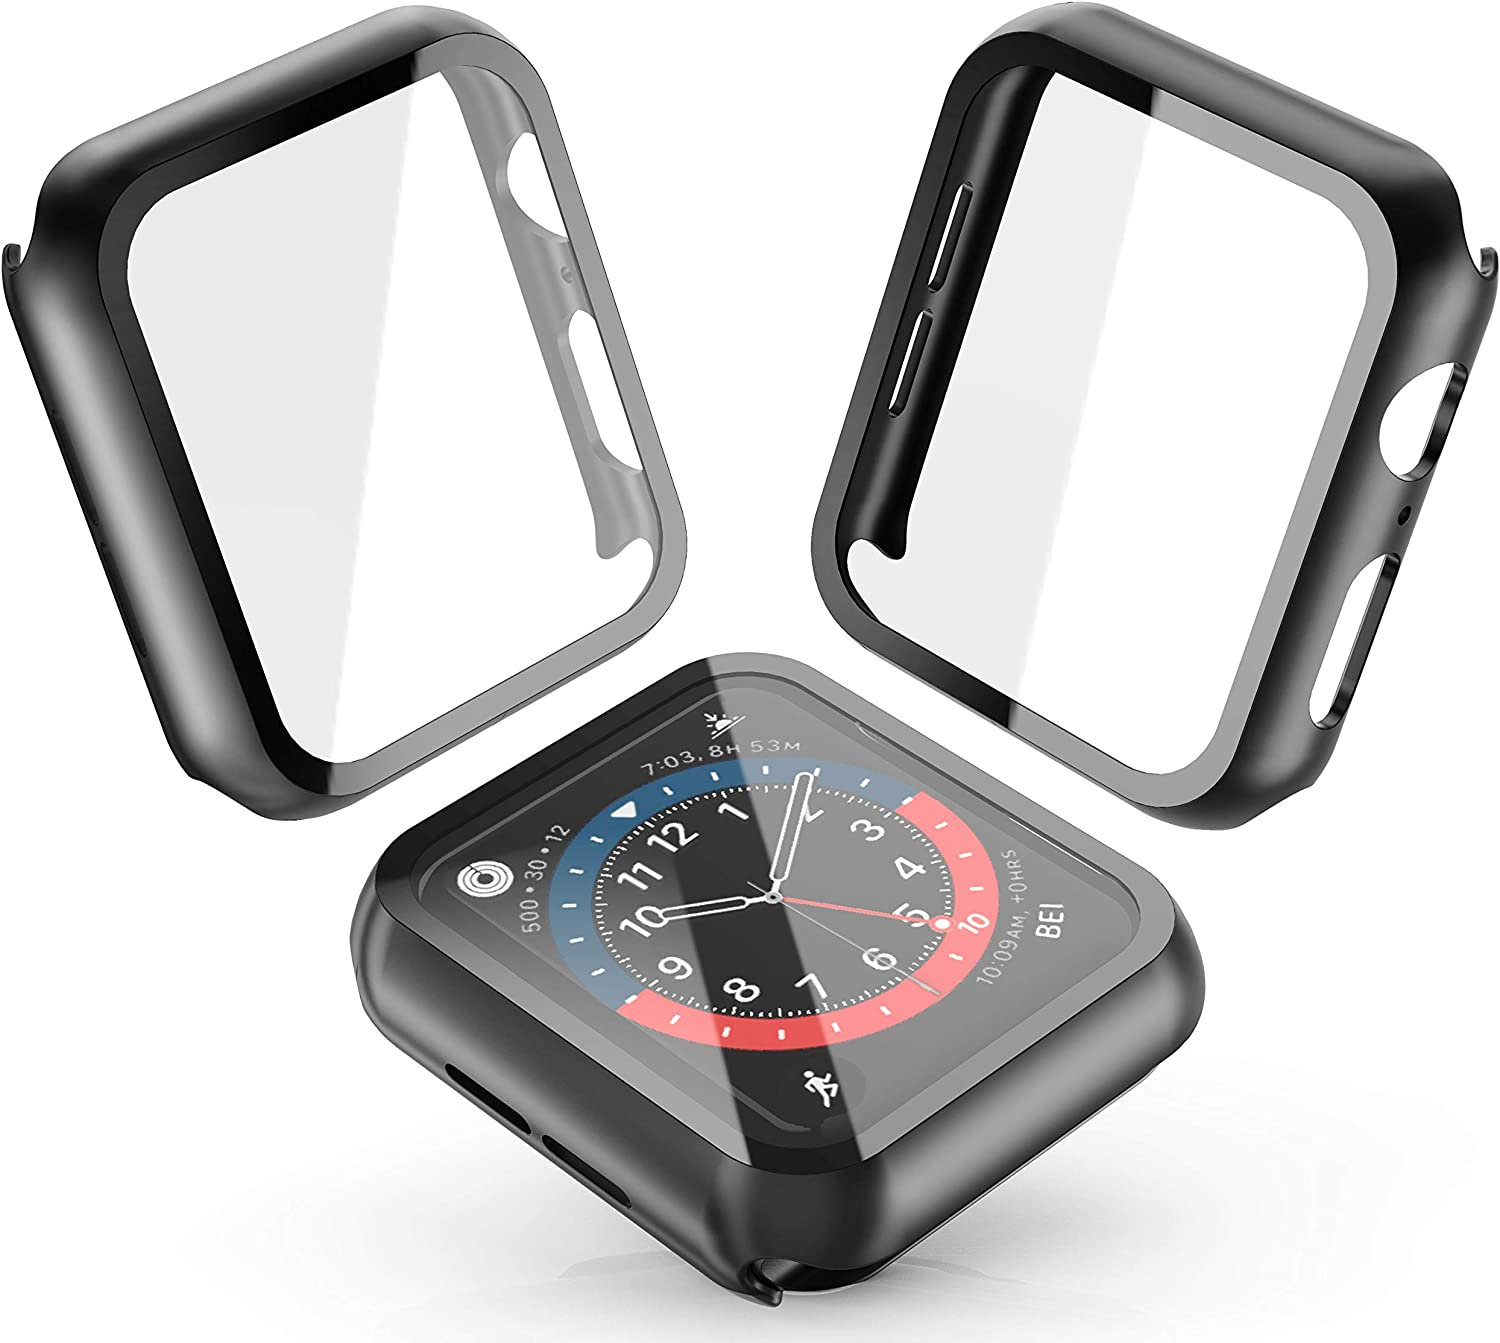 Julk Hard Case for Apple Watch Series 6 / SE/Series 5 / Series 4 44mm, 2020 New iWatch PC Overall Protective Cover with Slim Tempered Glass Screen Protector (2-Pack Black)